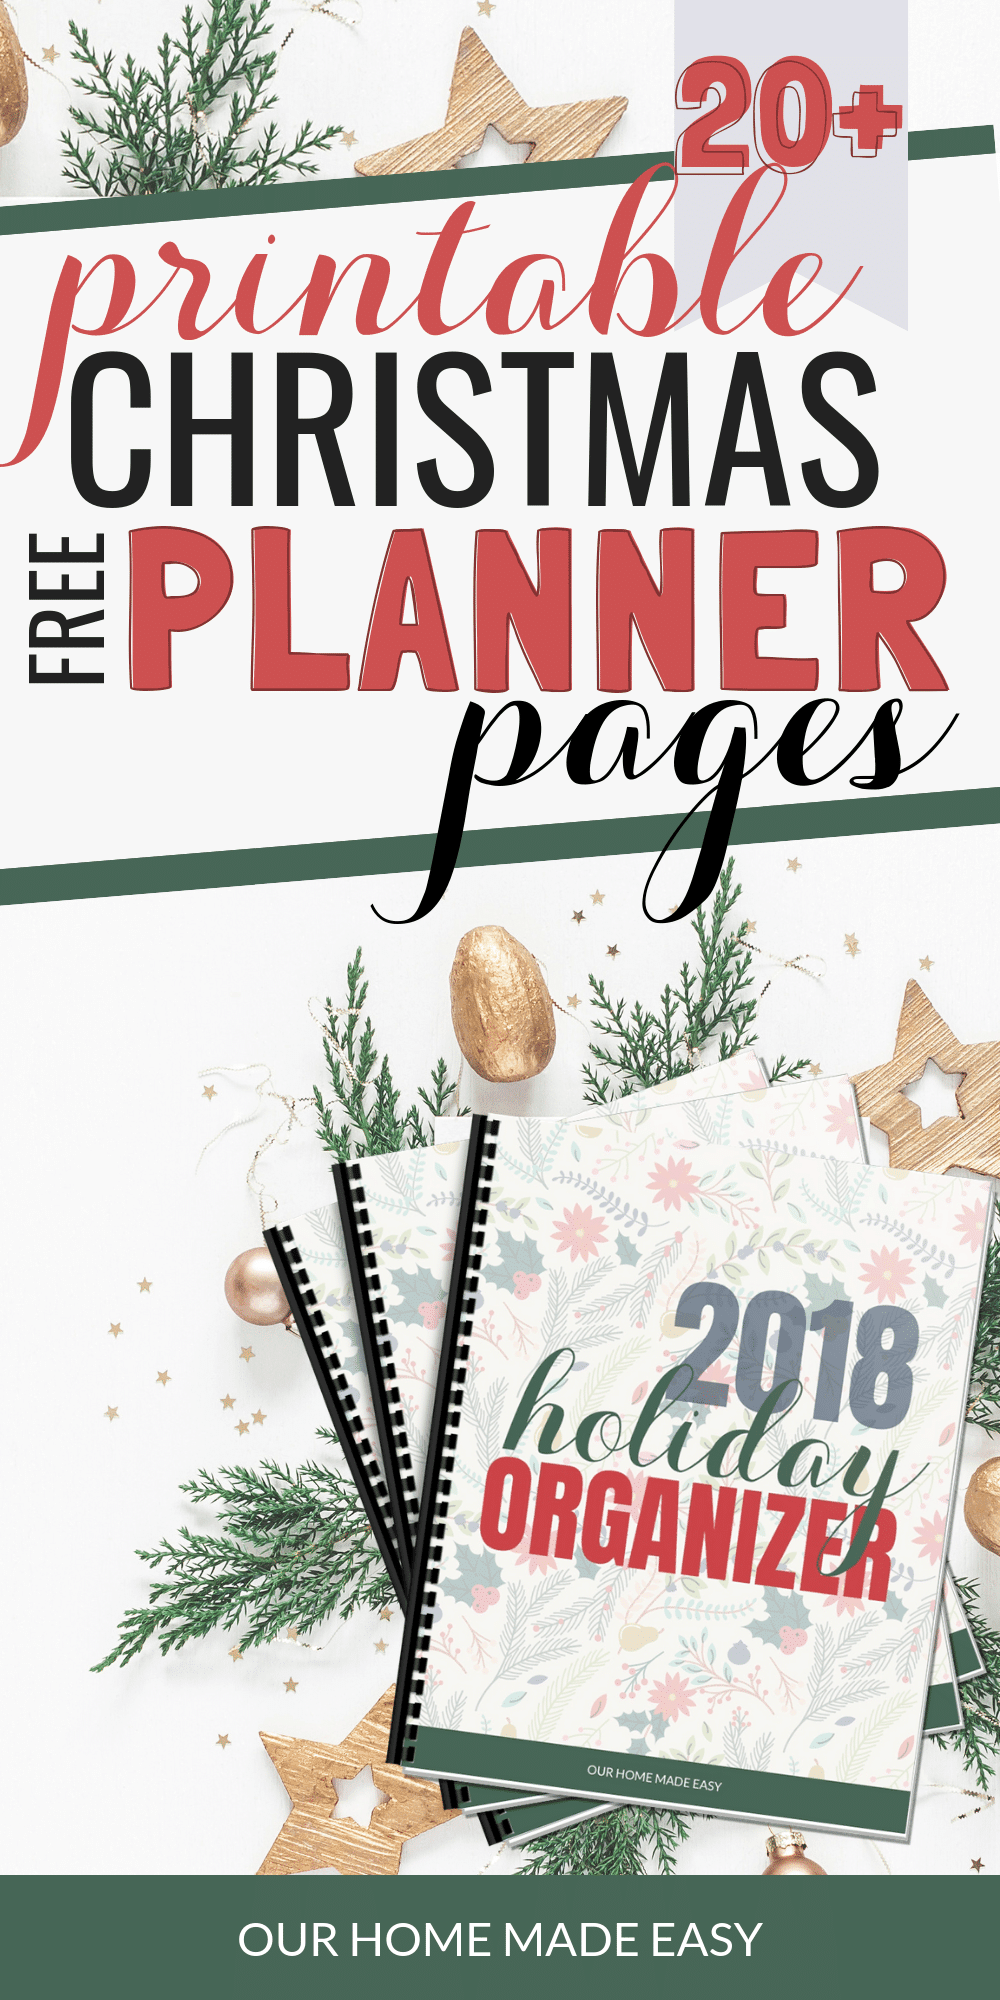 Download a free printable Christmas planner and holiday organizer. It's perfect for helping you stop feeling exhausted or overwhelmed! #christmas #organization #planner #holidays #happyholidays #xmas #familyholidays